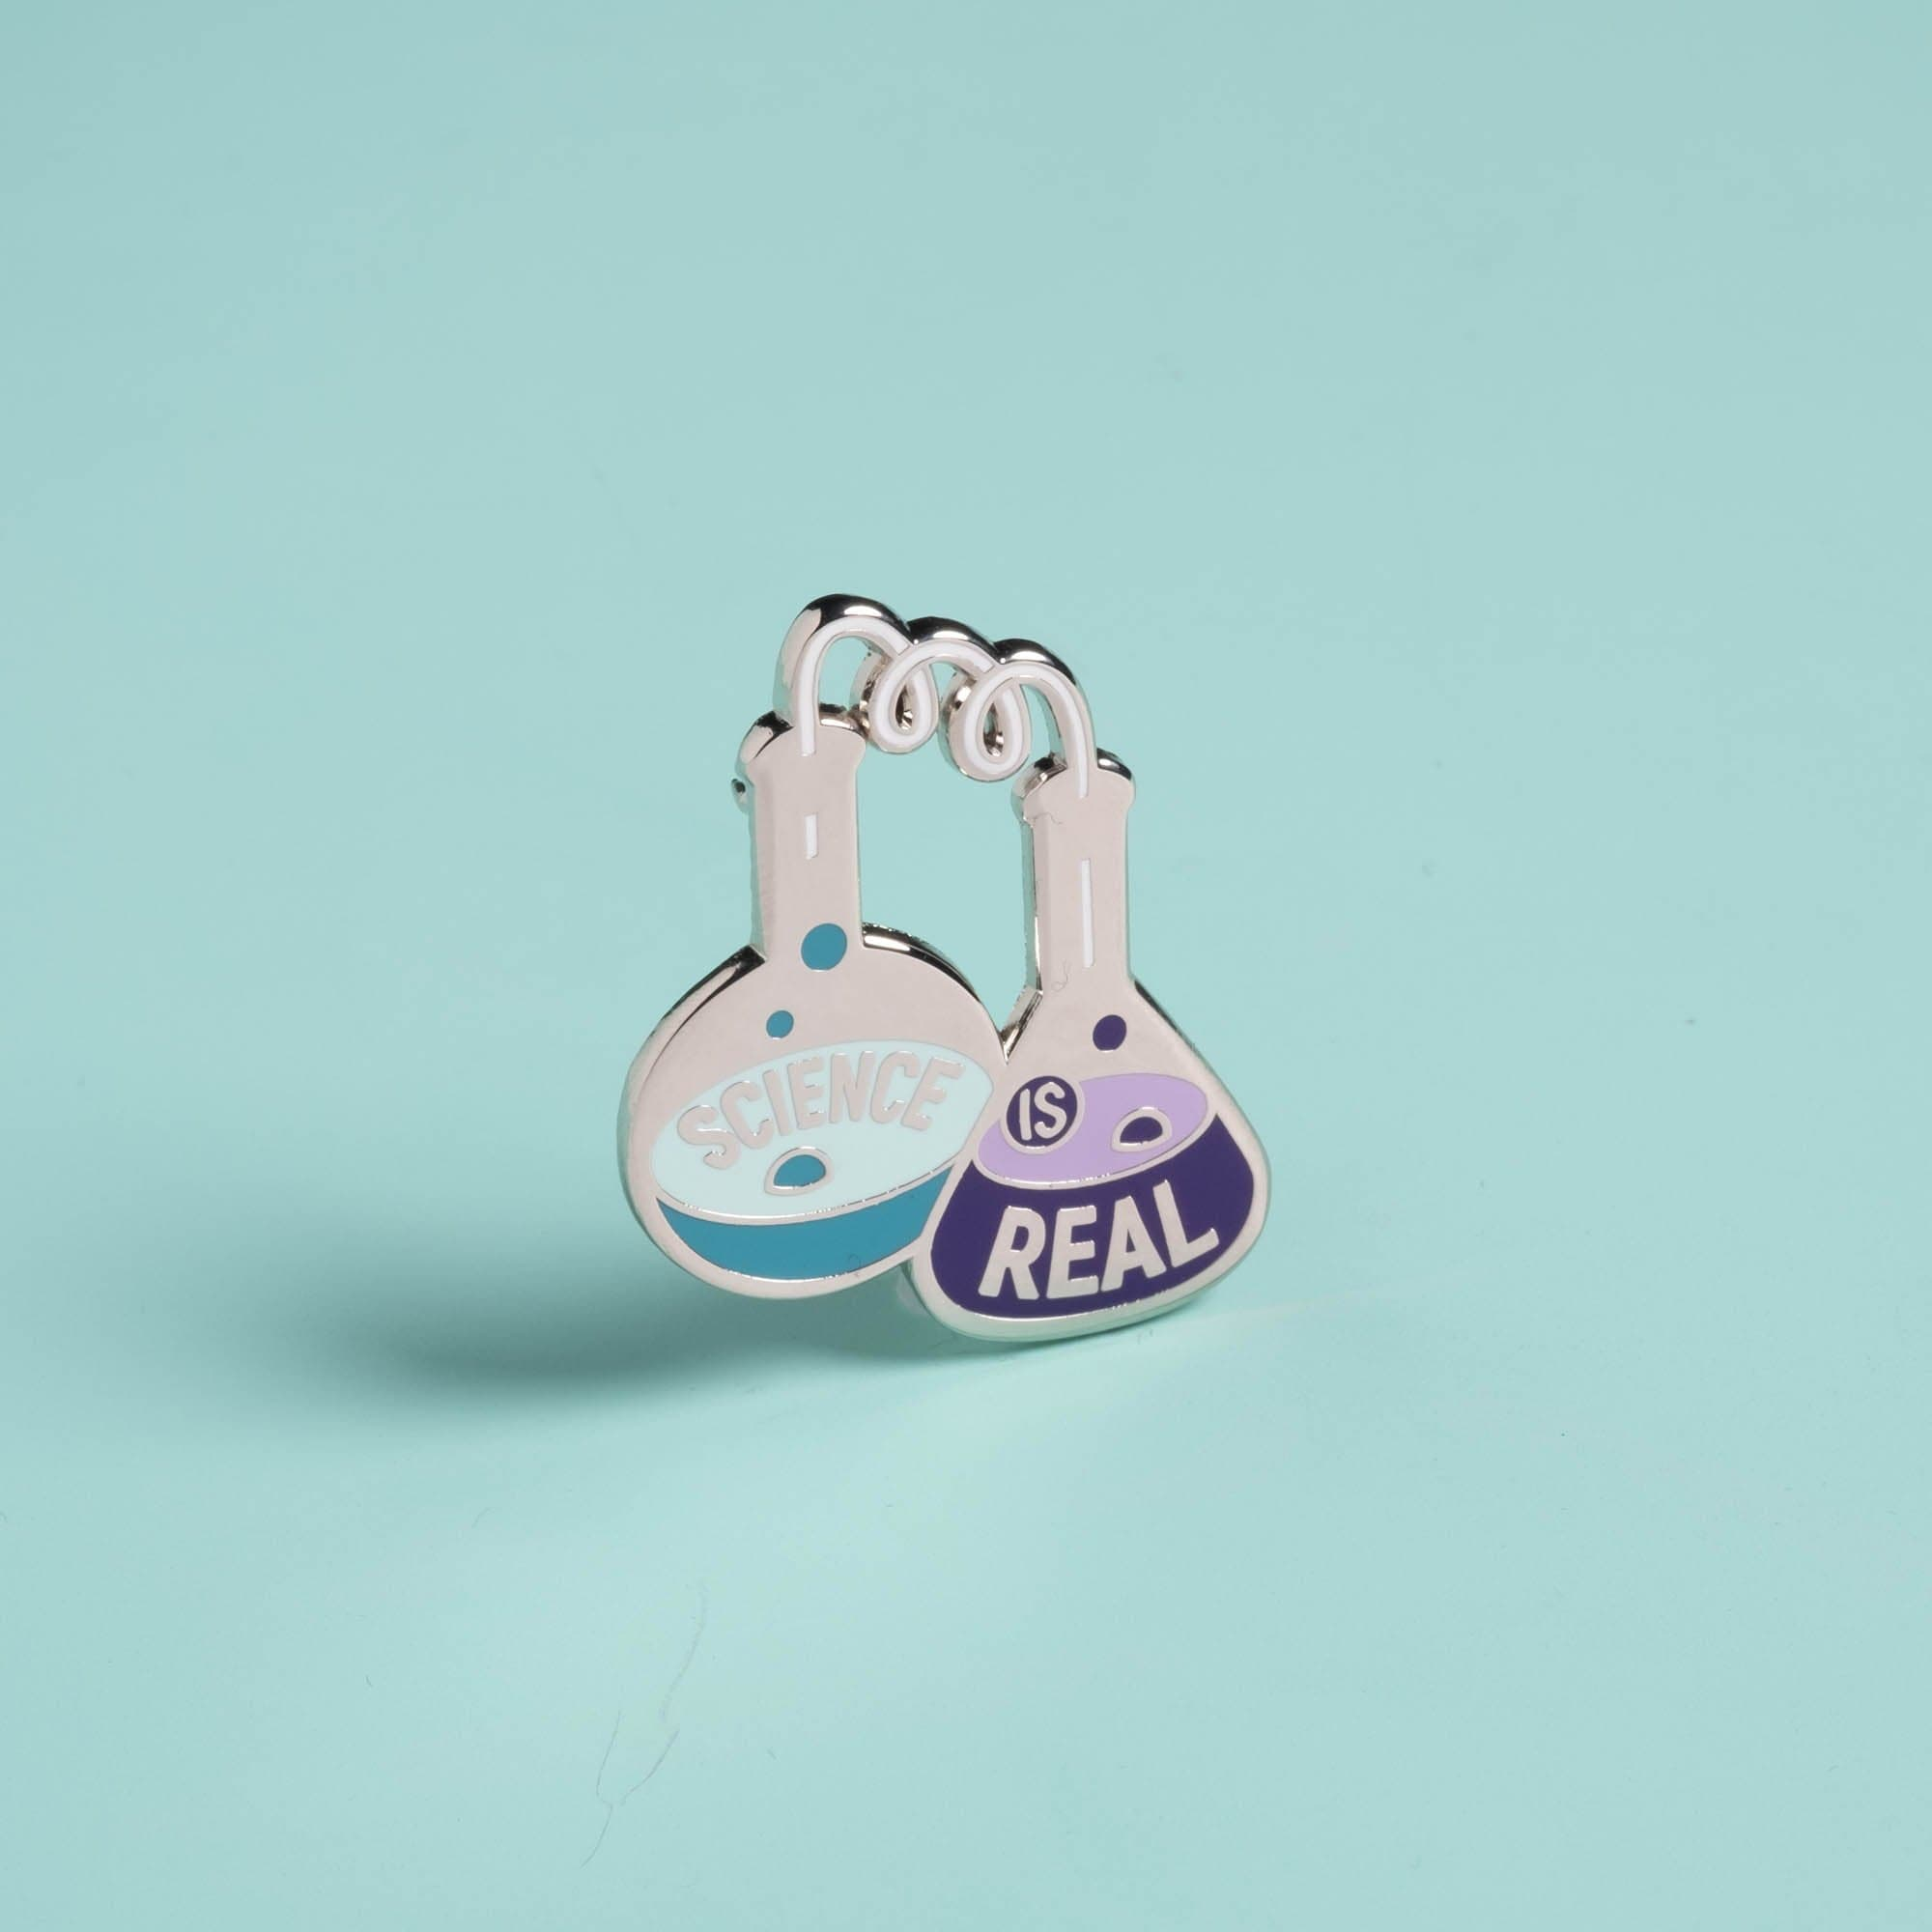 Science is Real Pins - Set of three